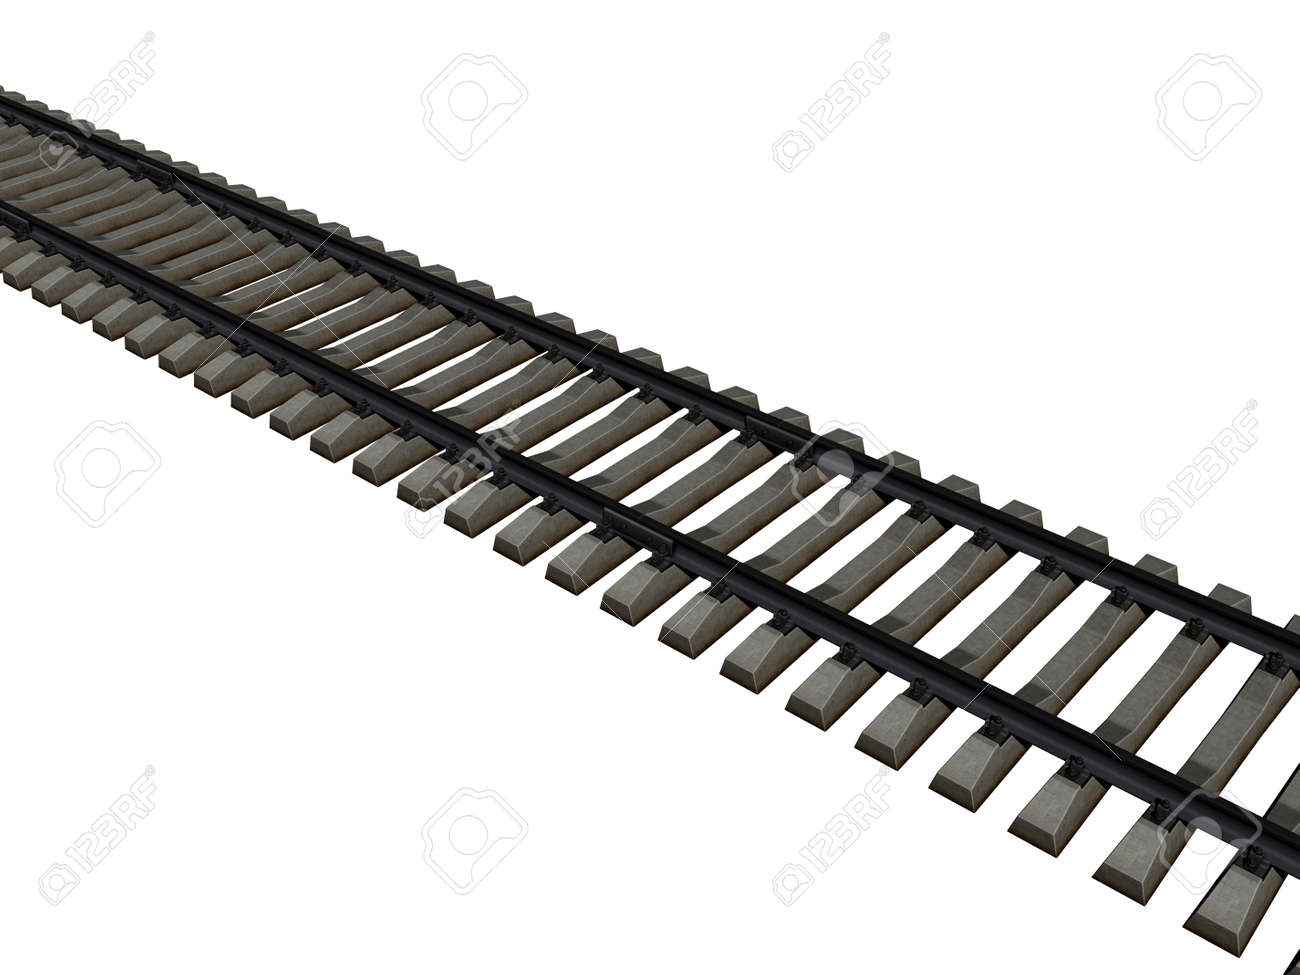 Rail track with sills as a route - 156860005